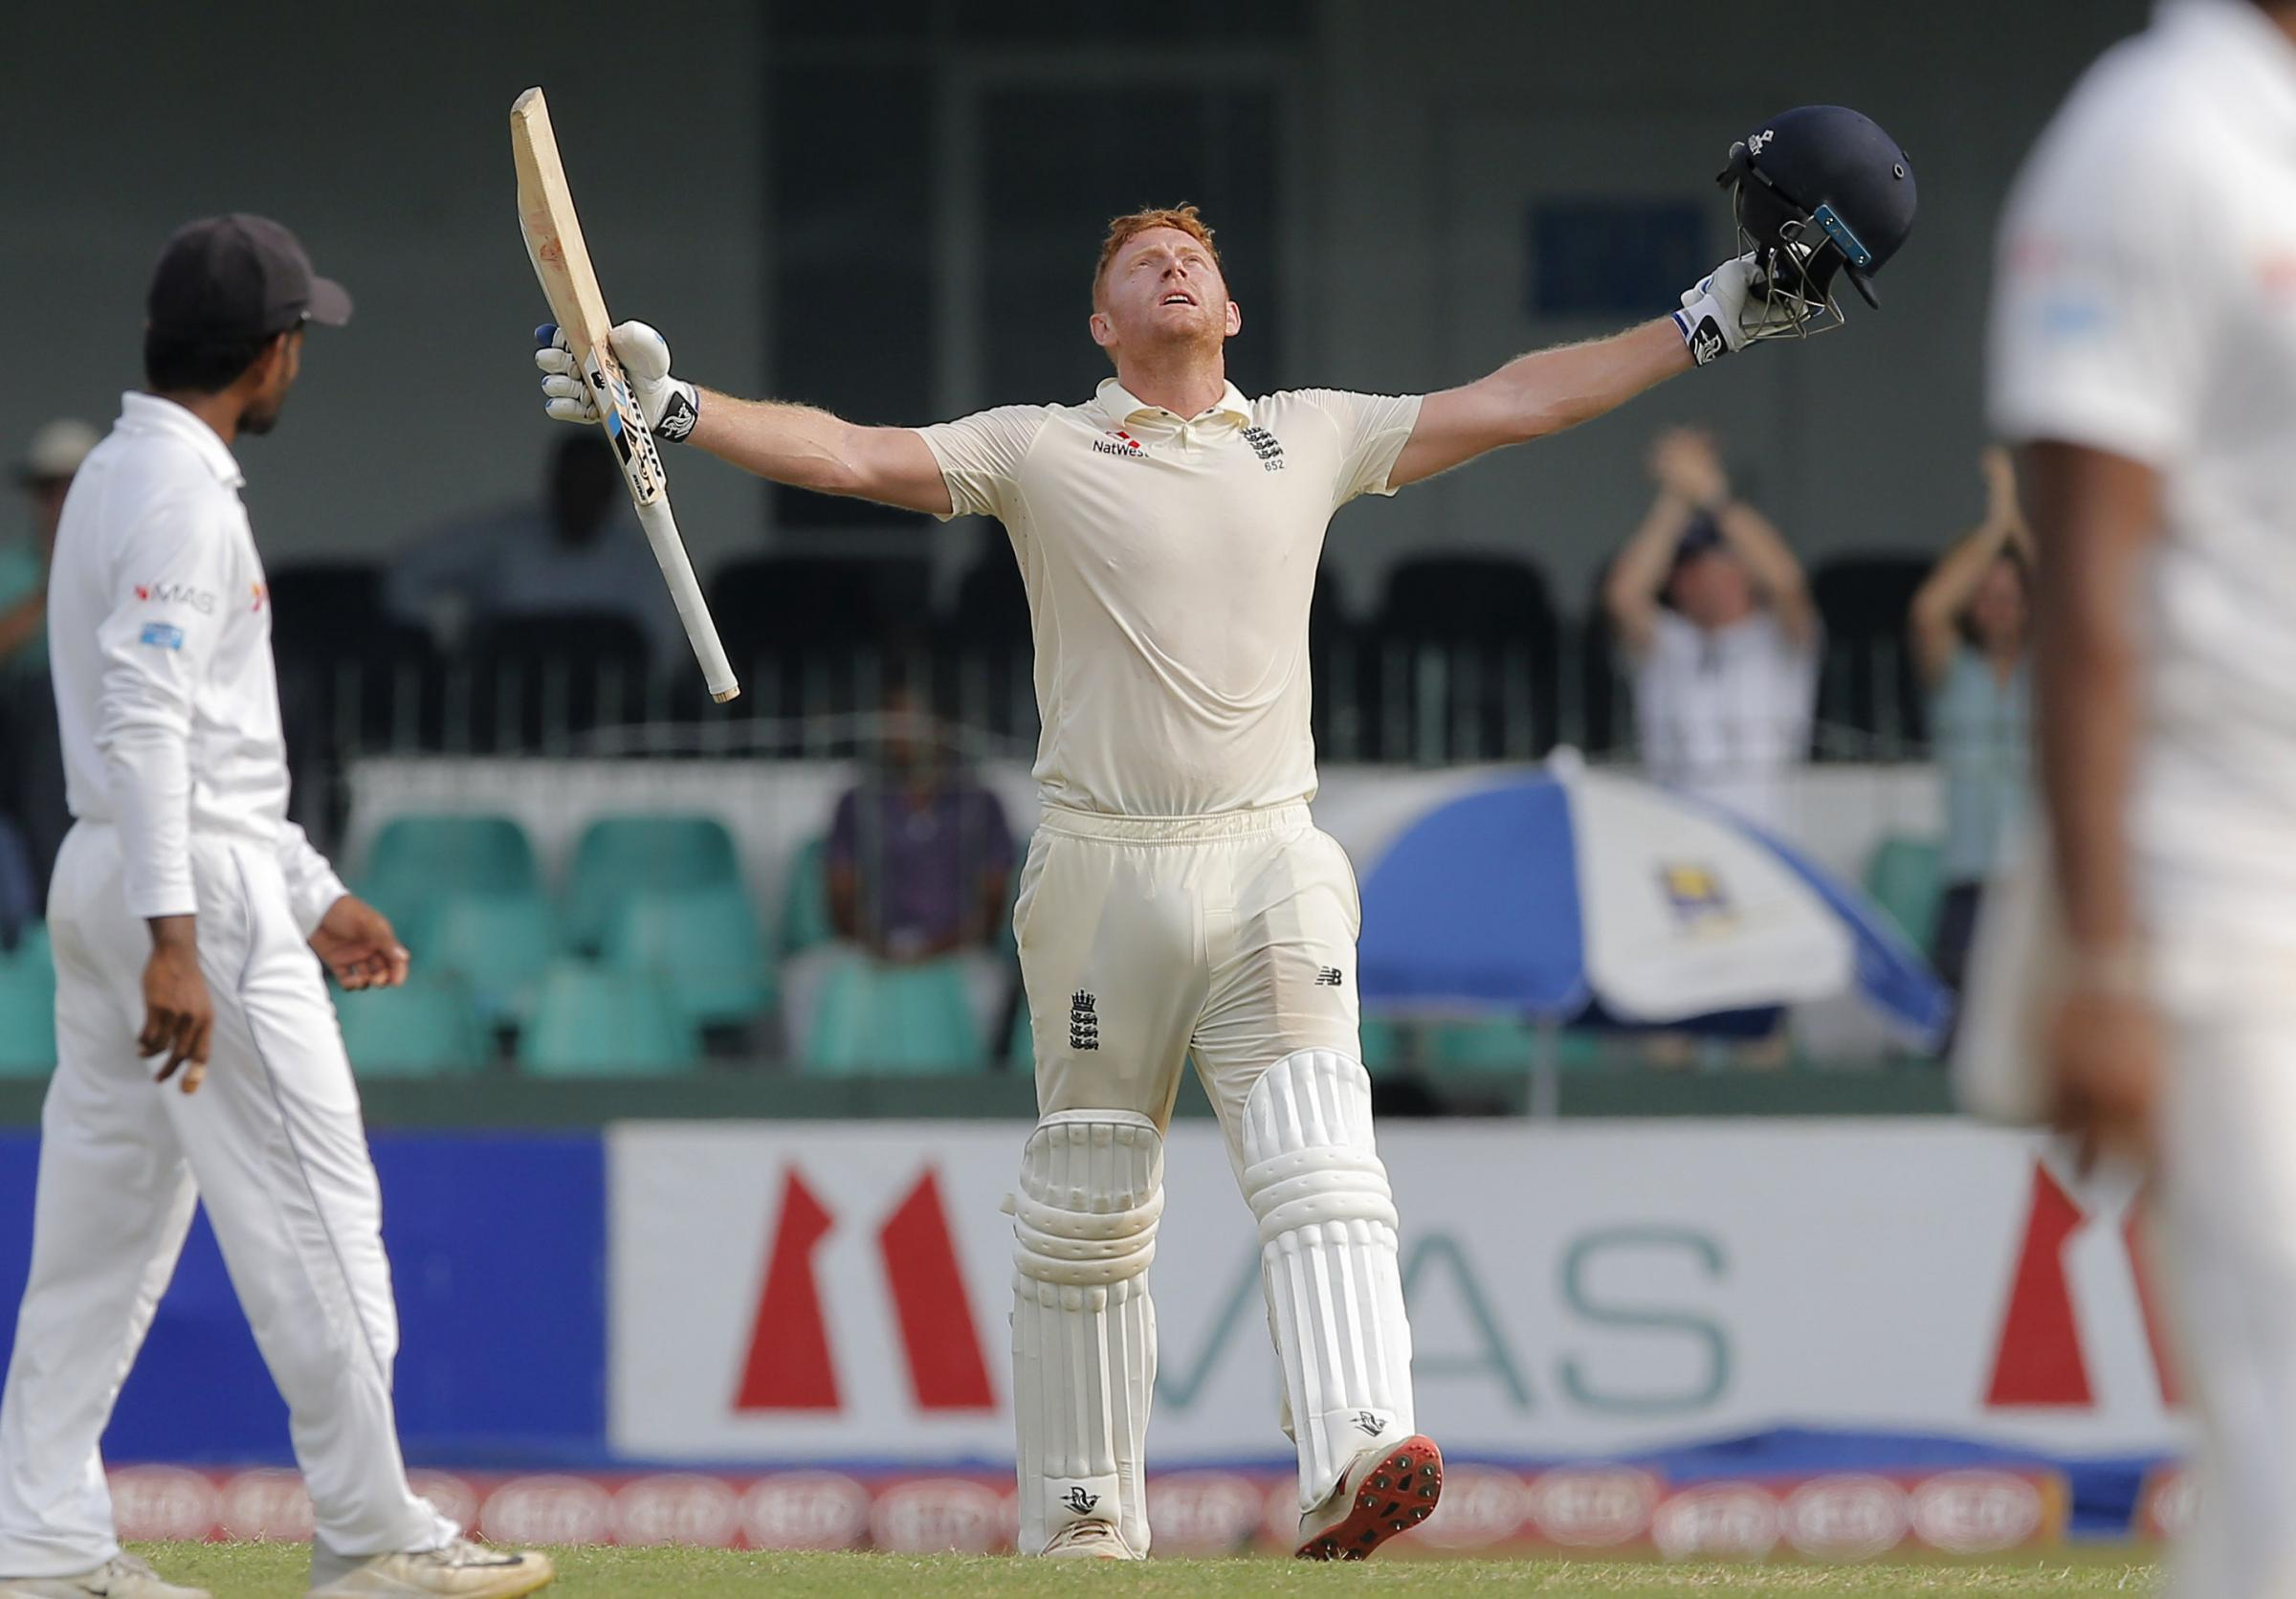 TON UP: England's Jonny Bairstow celebrates scoring his century during the first day of the third Test in Colombo. Pic: AP Photo/Eranga Jayawardena.